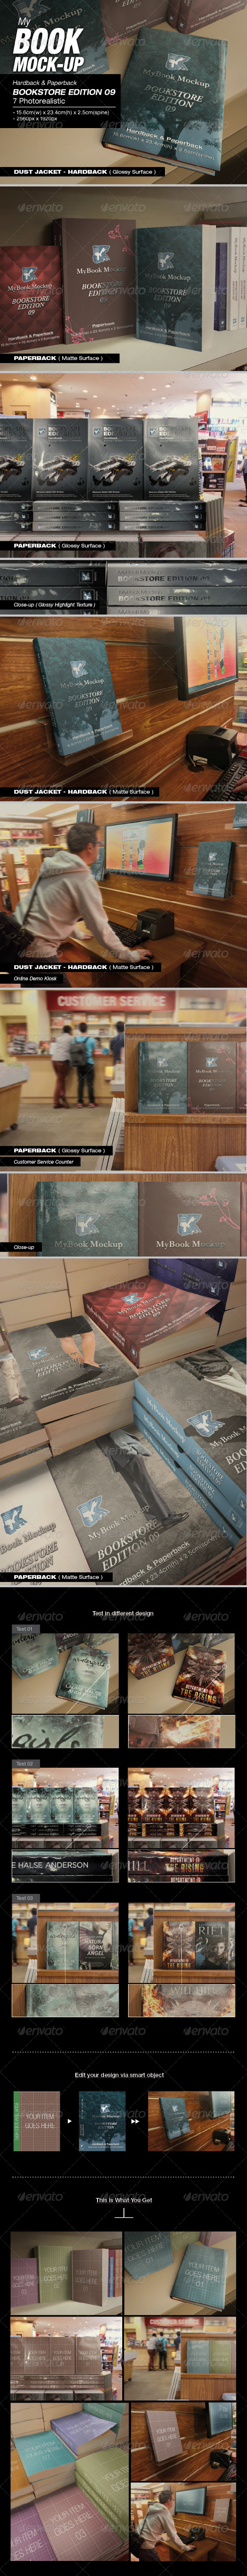 GraphicRiver MyBook Mock-up Bookstore Edition 09 8422874